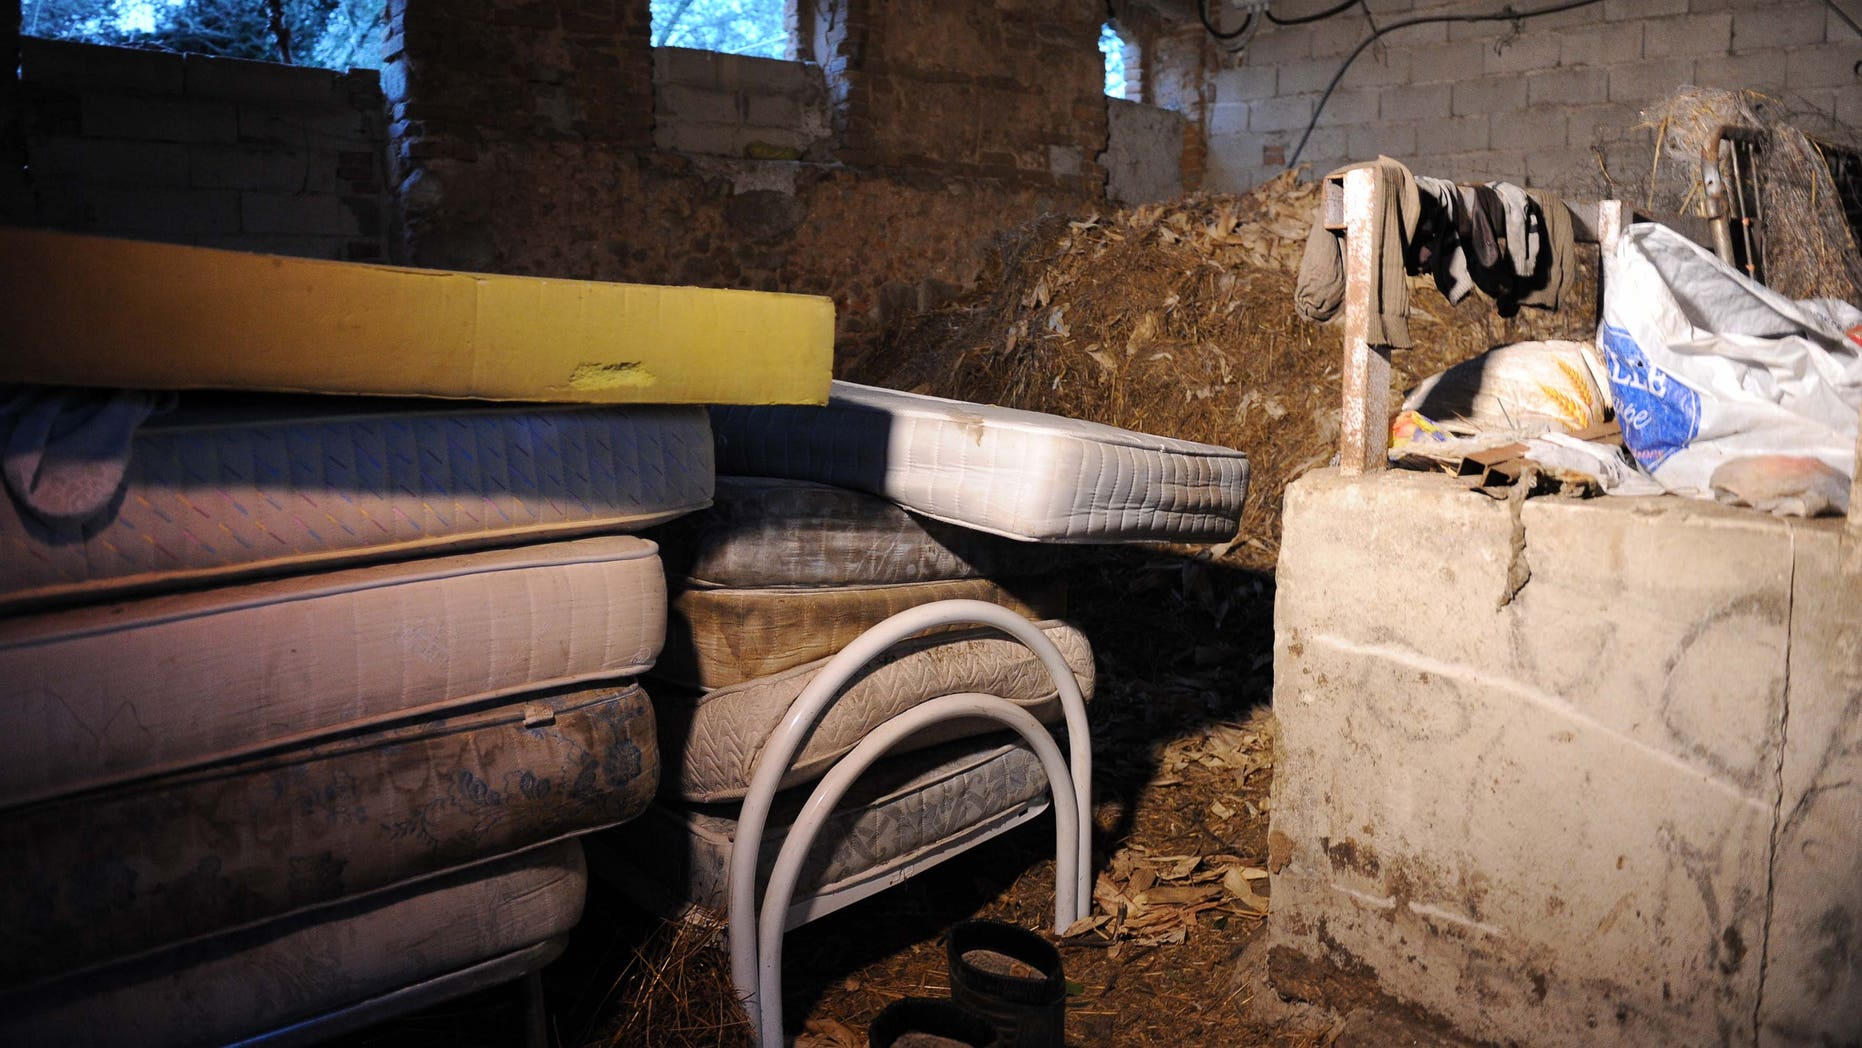 Feb 29 2016 A Farmhouse Where Refugees Took Shelter In Southern Italy